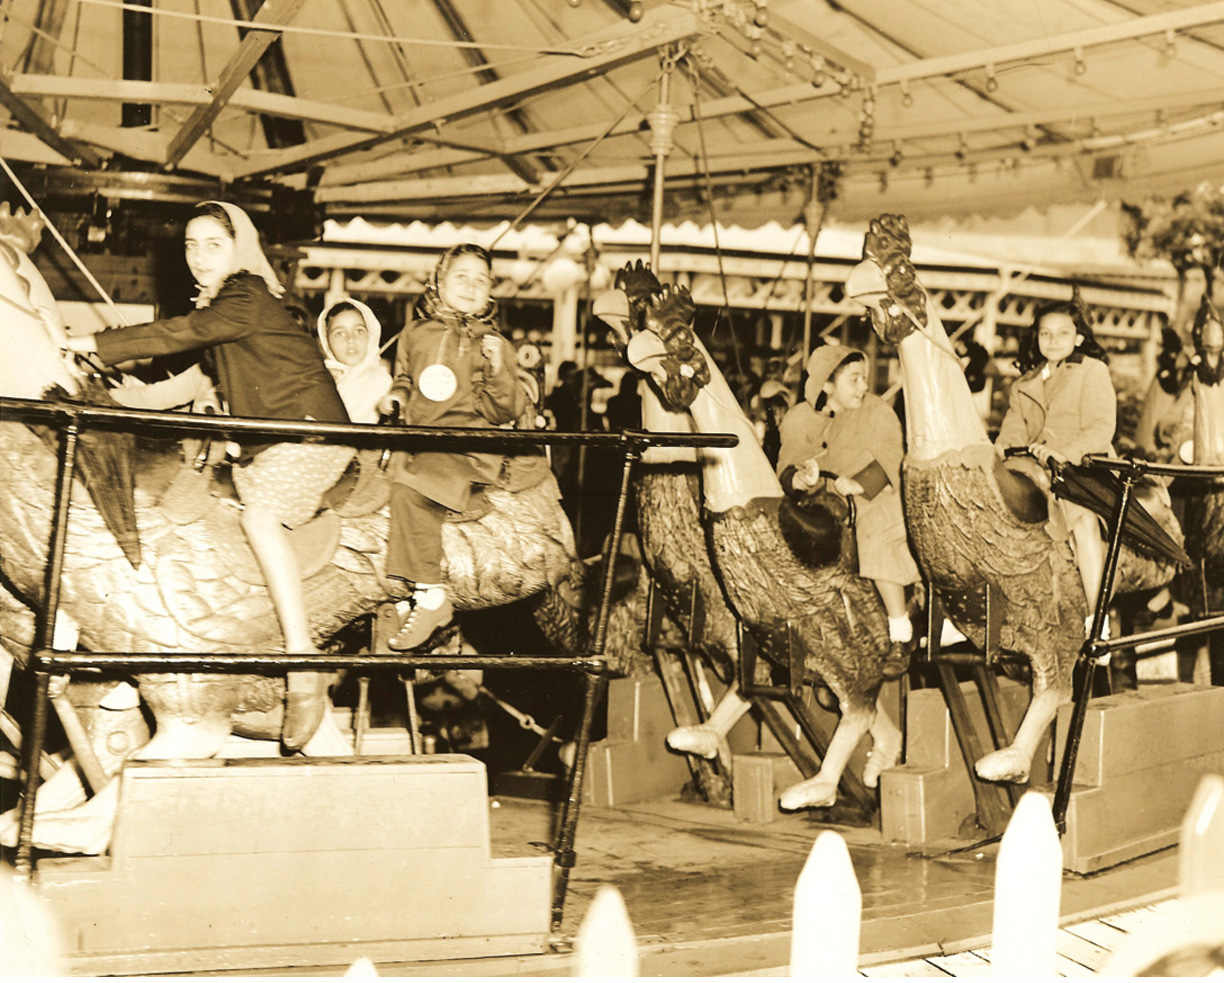 Chanticleer-chicken-merry-go-round-Steeplechase-park-ca-1930